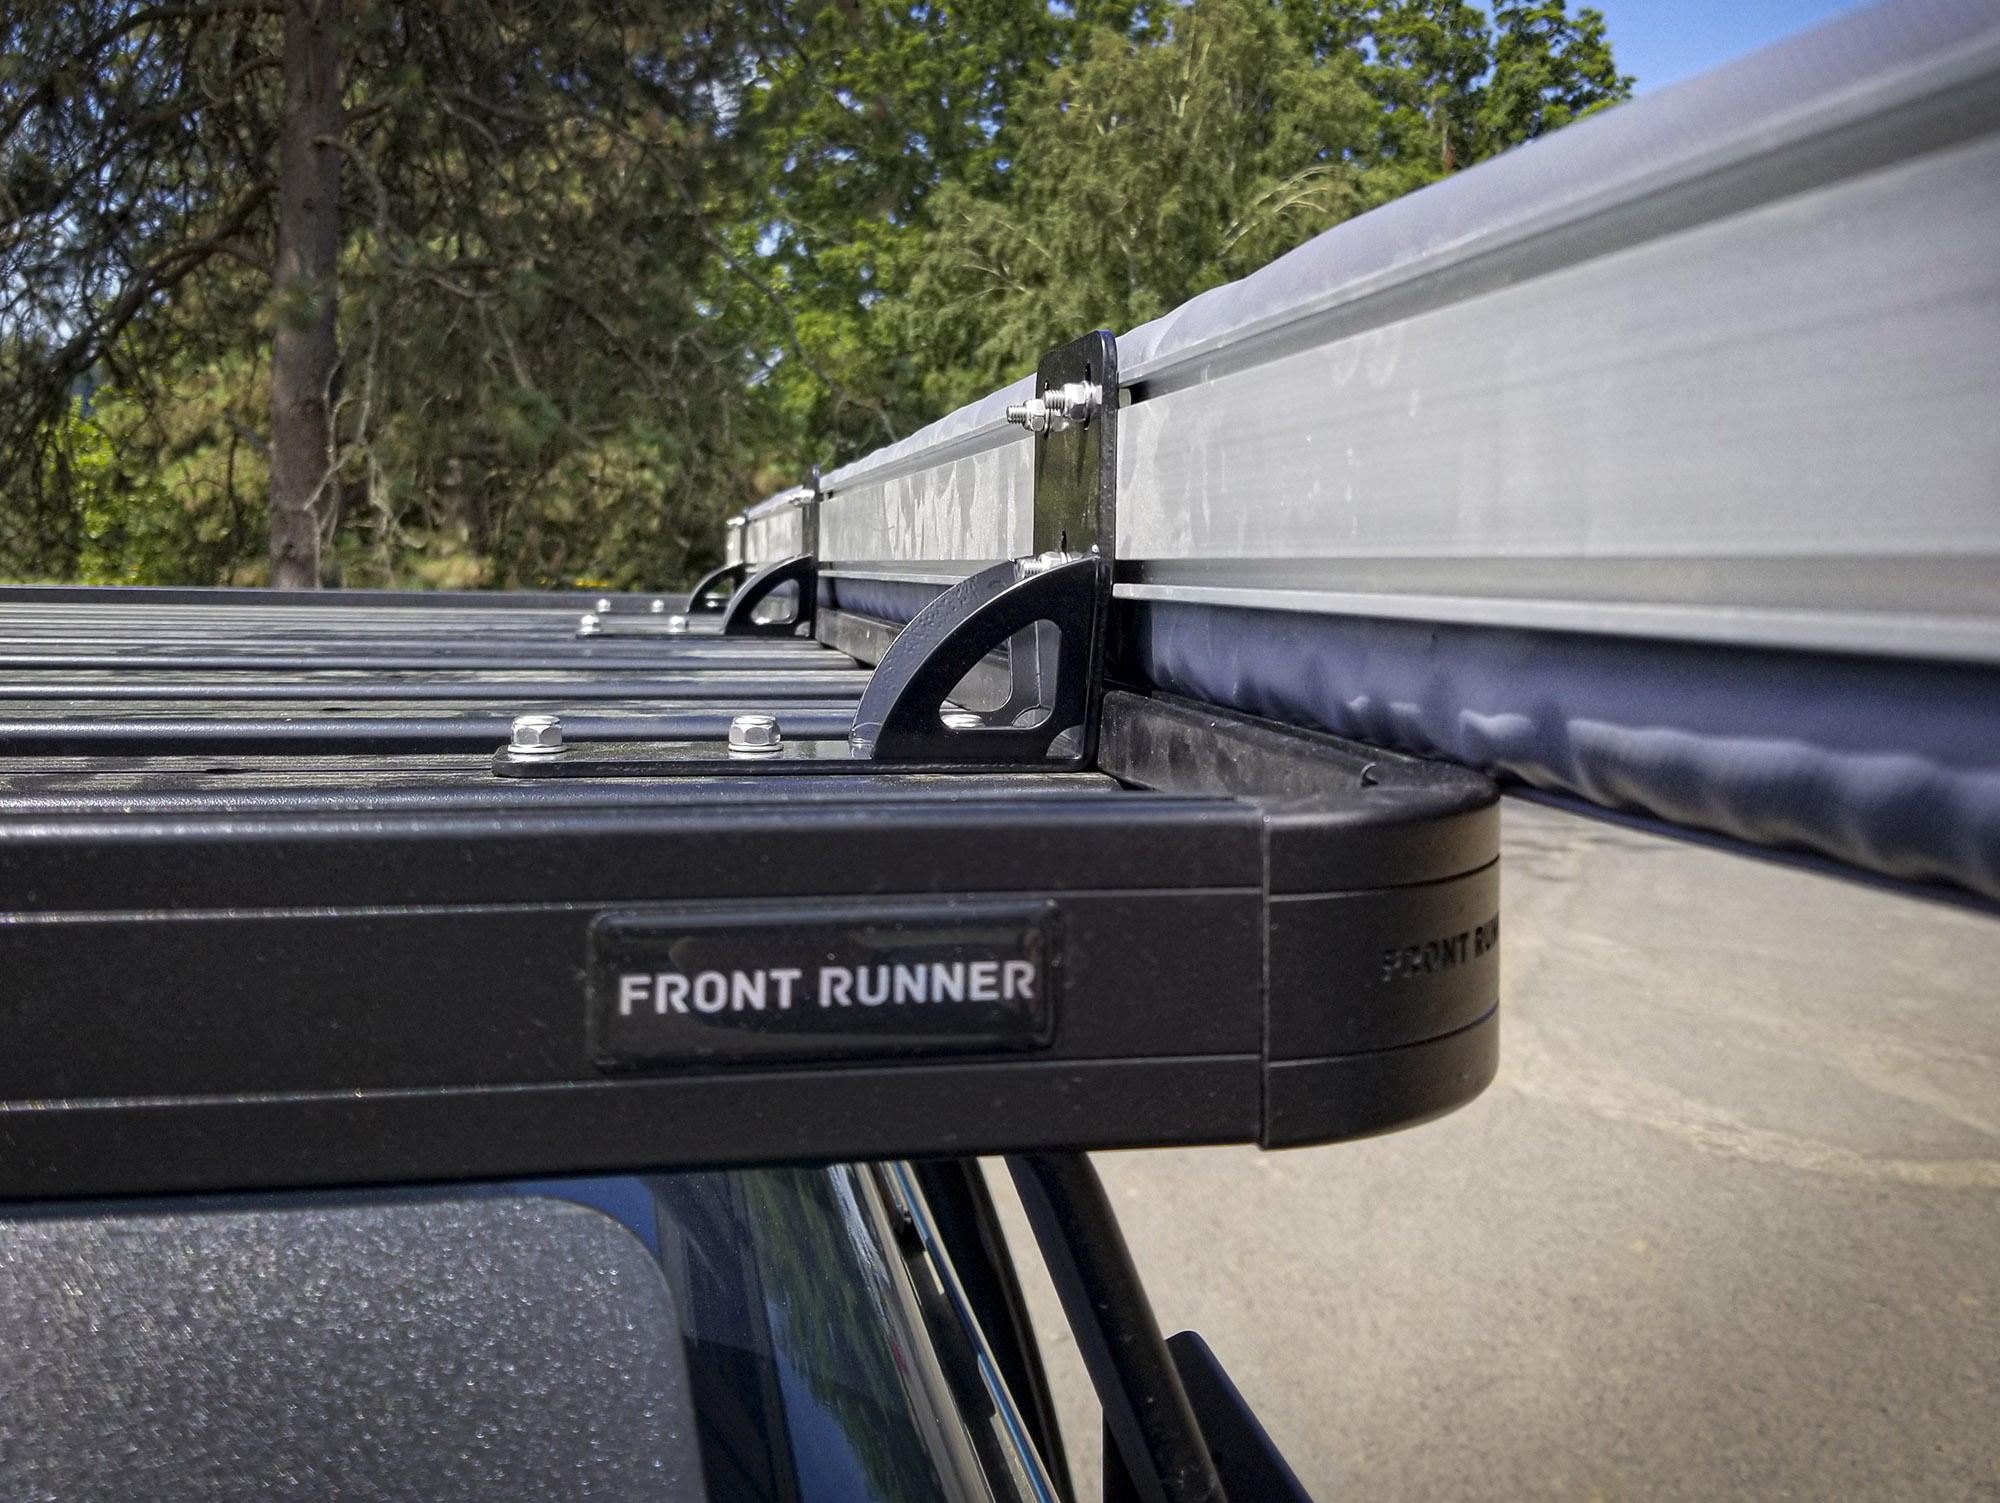 The black ARB Universal Awning Brackets fit perfectly on our black Front Runner Slimline II rack